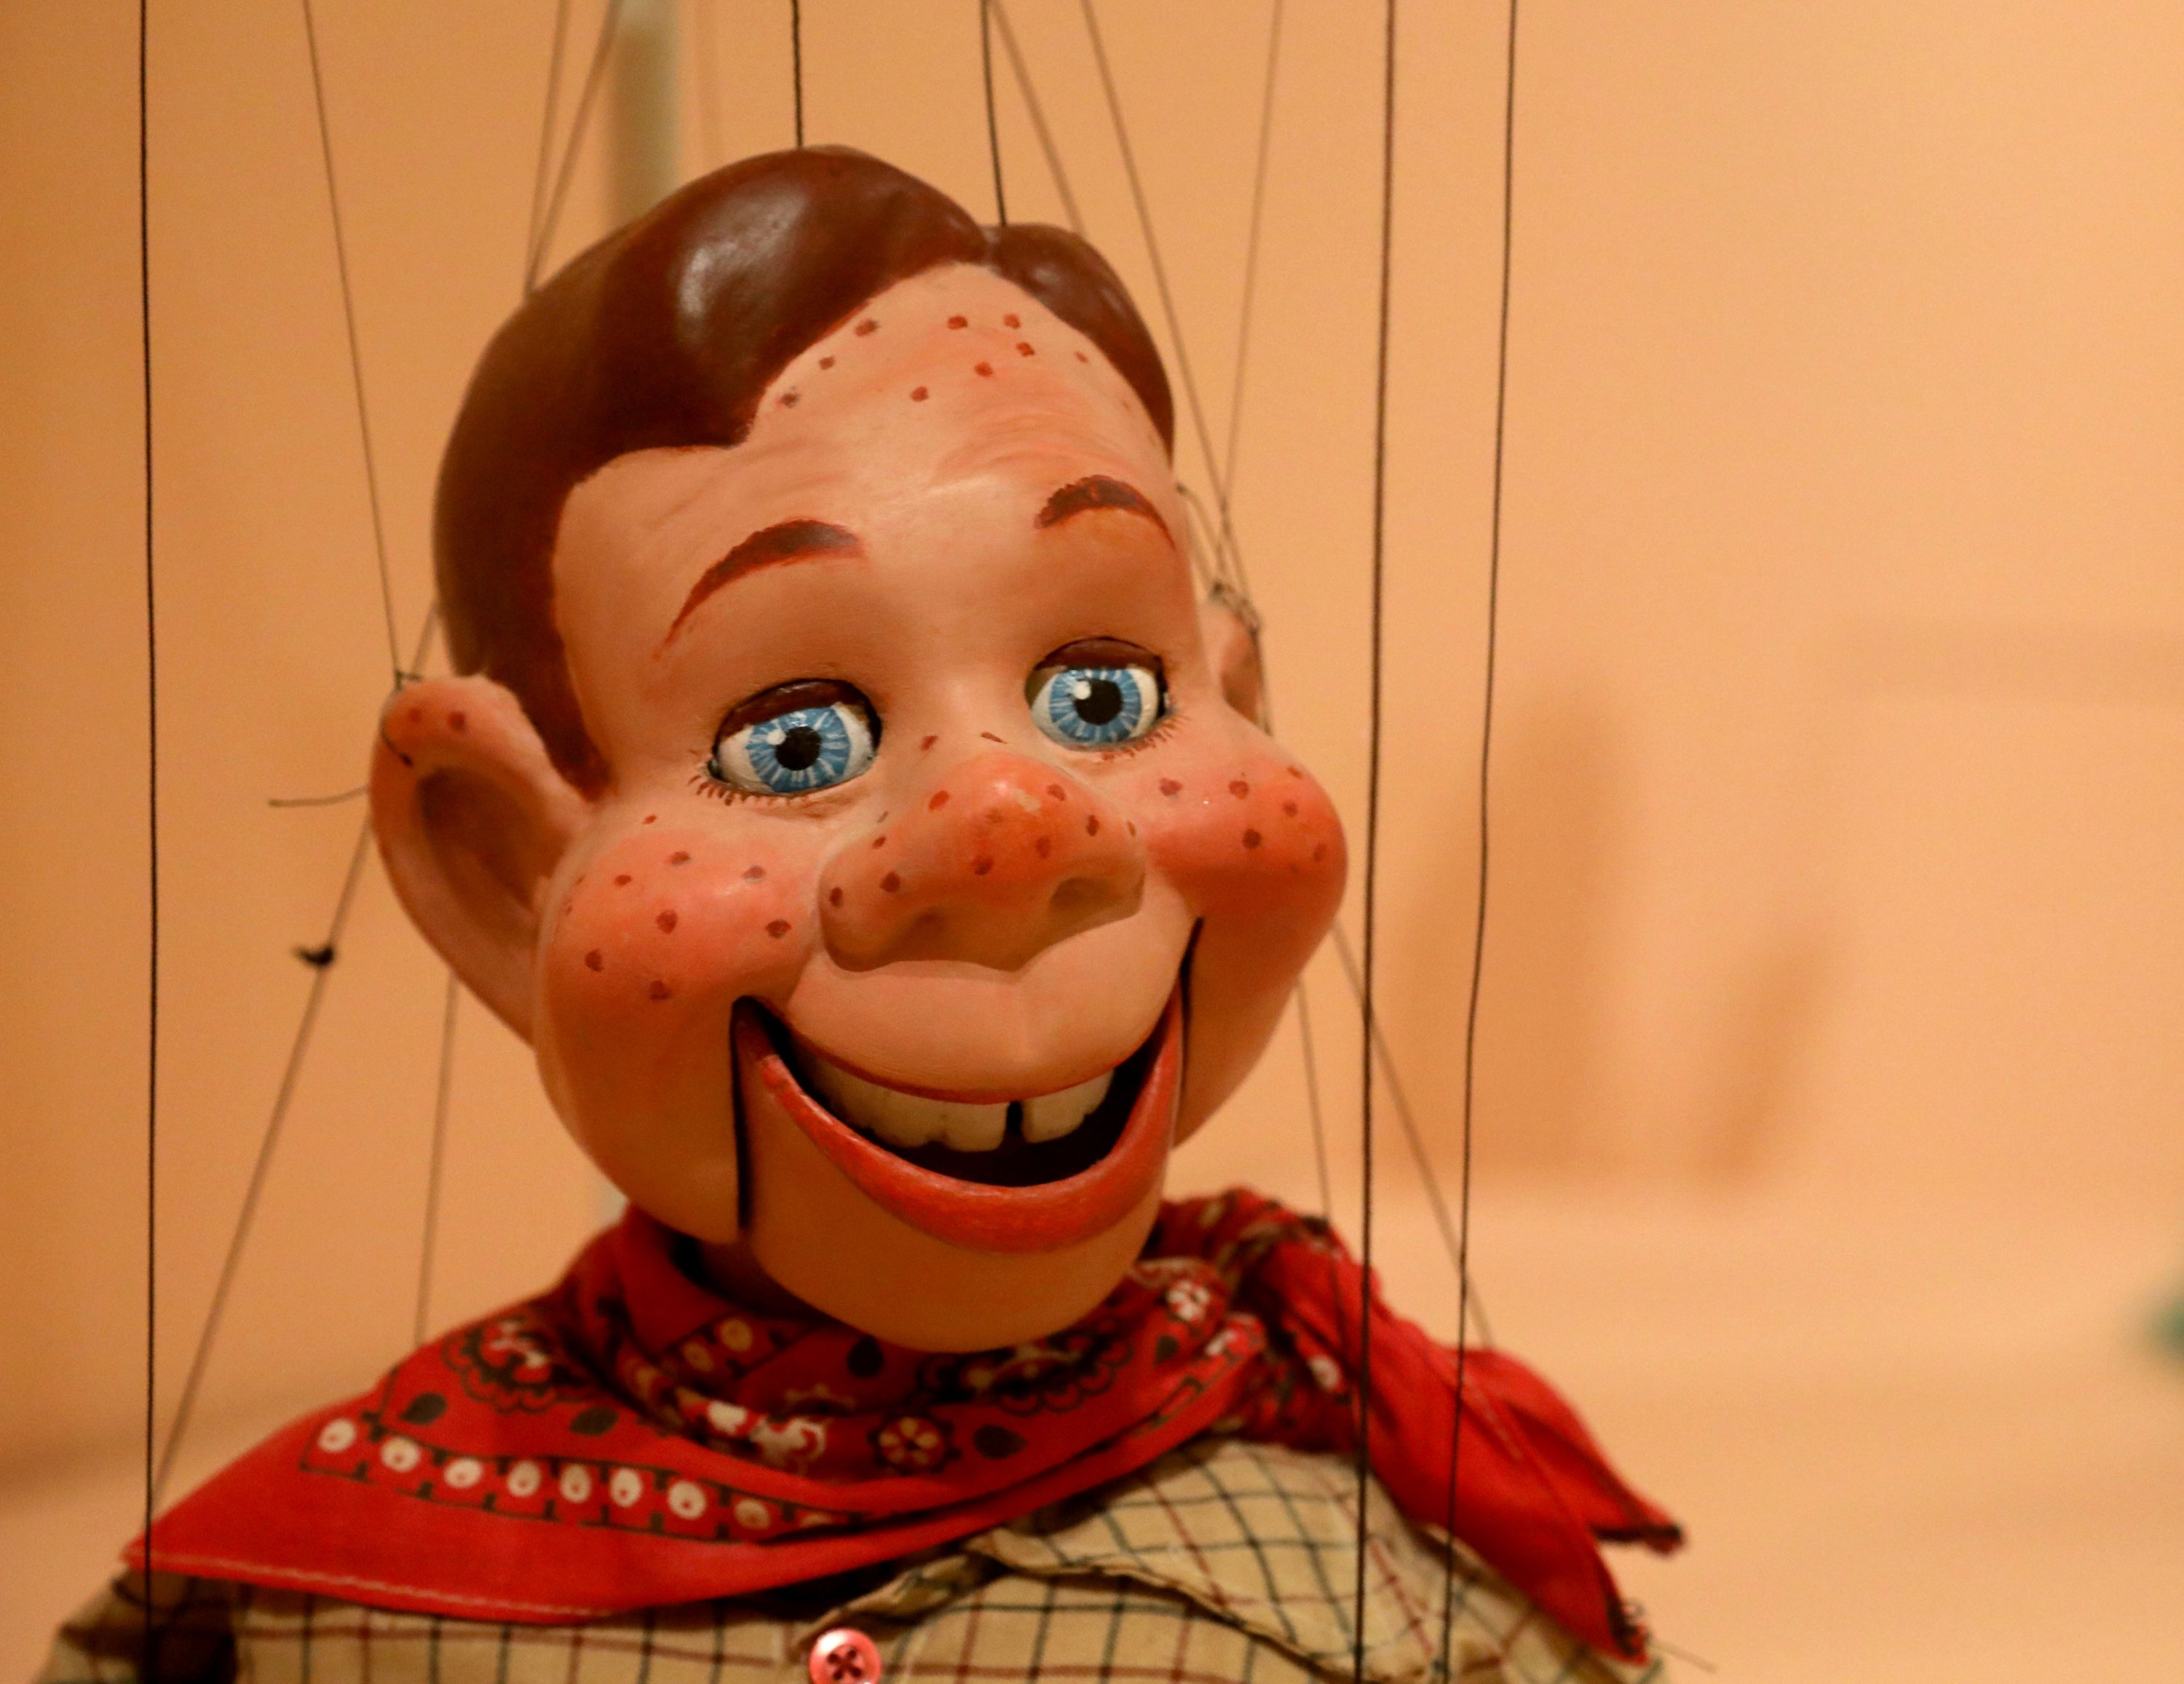 The Howdy Doody puppet is among those at the Puppets of New York show at The Museum of City of New York, New York, U.S. (DPA Photo)